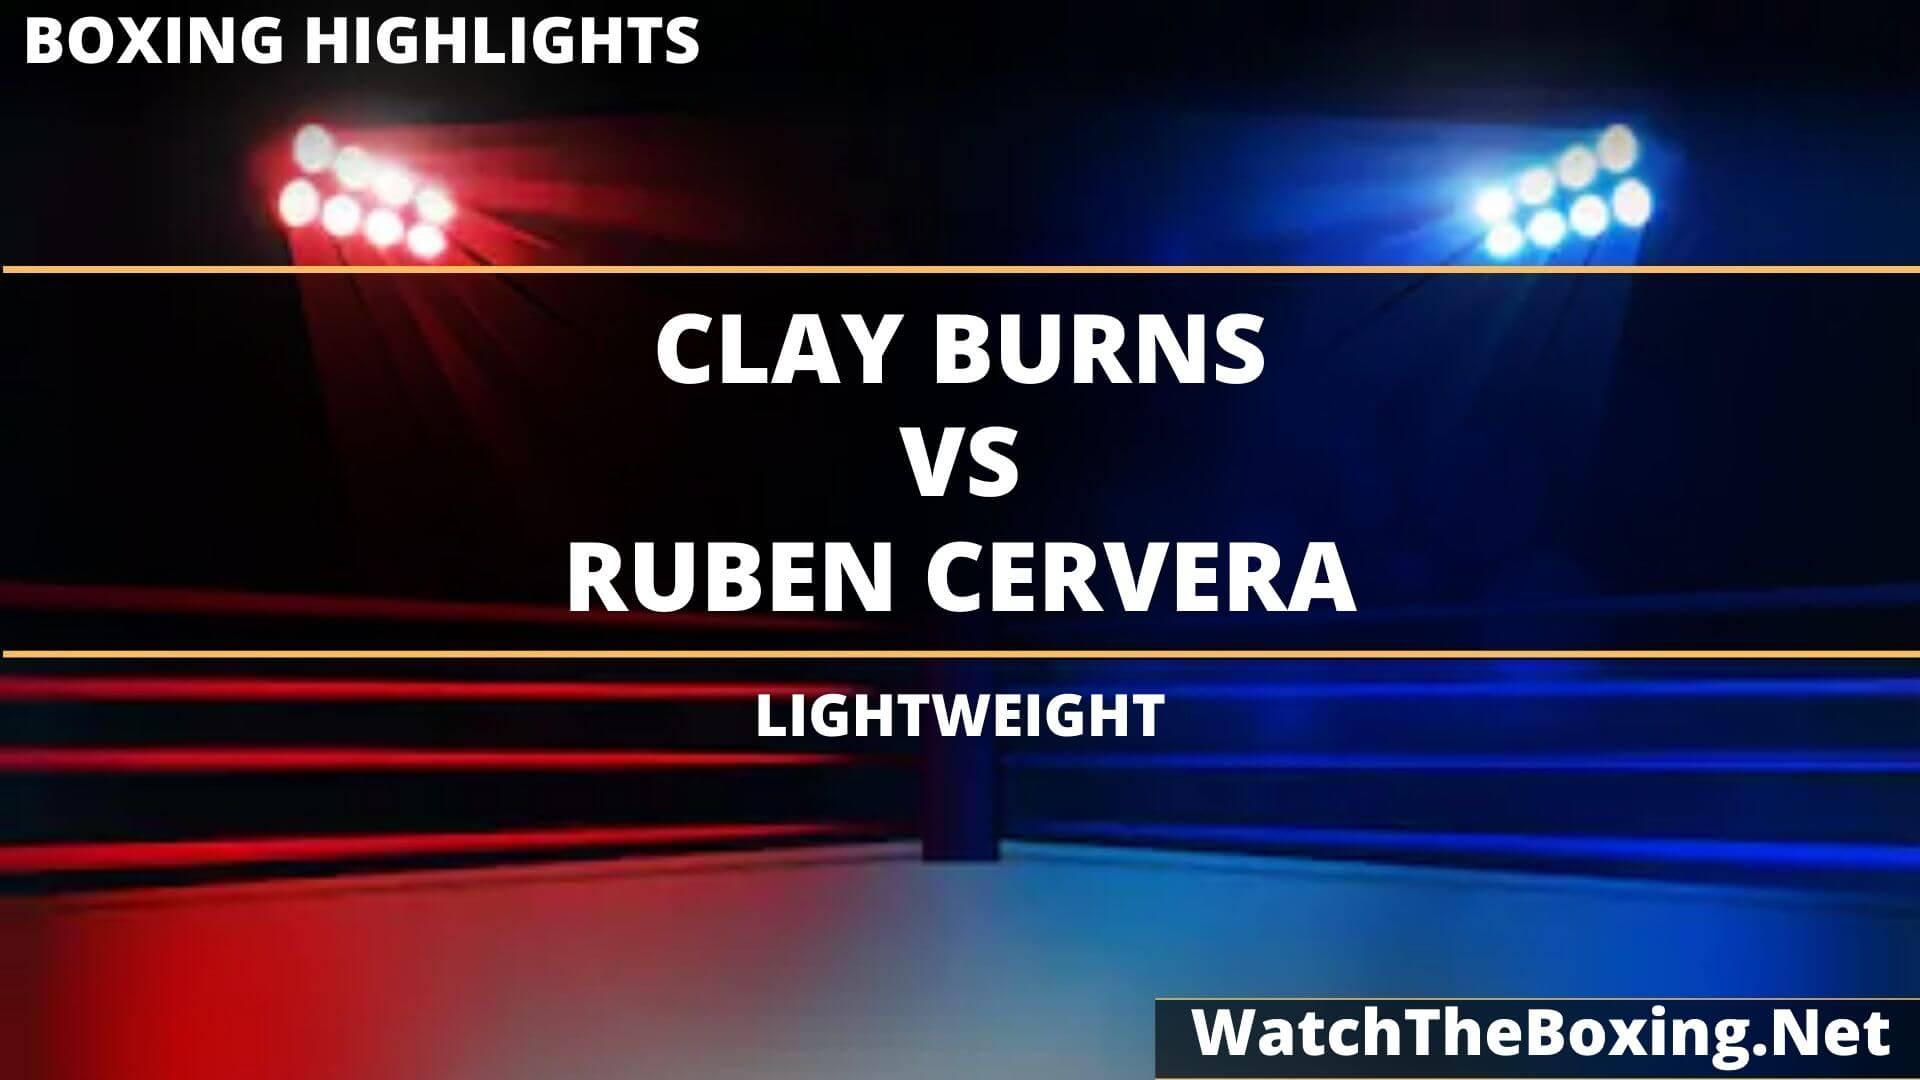 Clay Burns Vs Ruben Cervera Highlights 2020 Lightweight